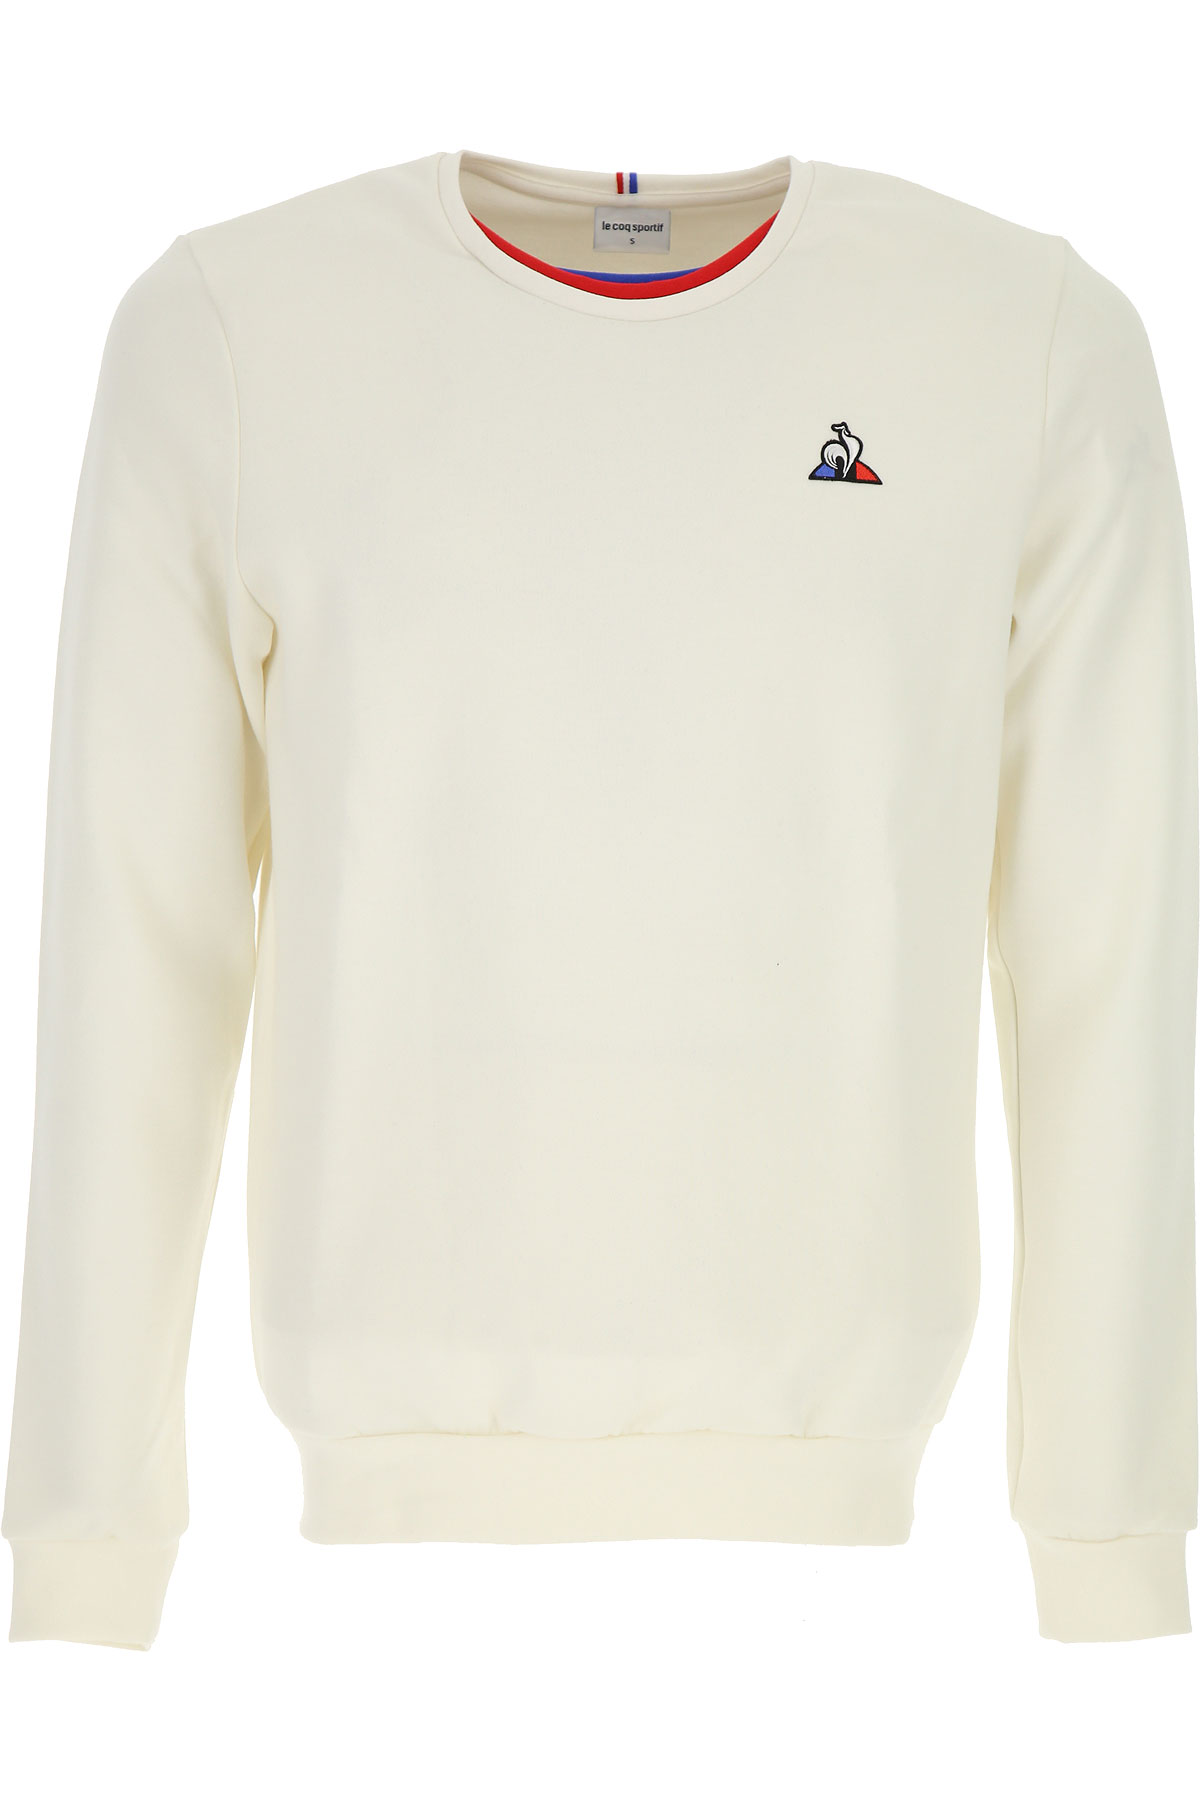 50b5496b47 ... Le Coq Sportif Clothing > LIMITED TIME OFFERS. FULL SCREEN. 1) Drag to  view product 2) Double click to start rotation